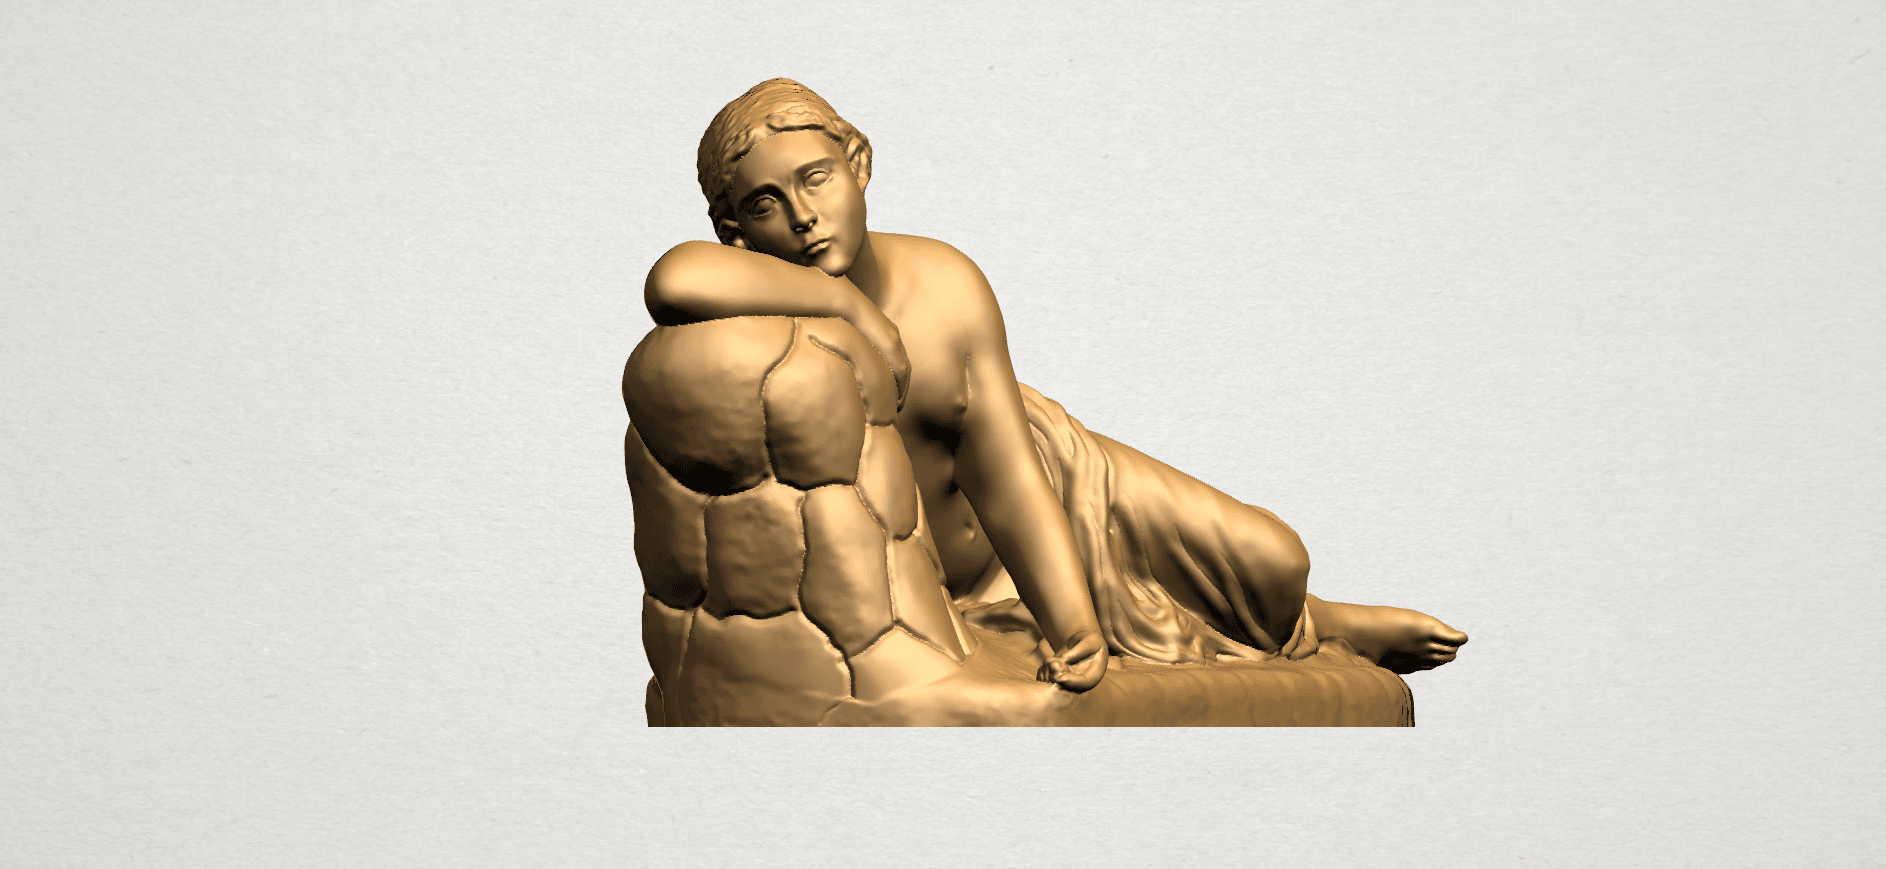 Naked Girl - Lying on Side - A10.png Download free STL file Naked Girl - Lying on Side • 3D printer template, GeorgesNikkei